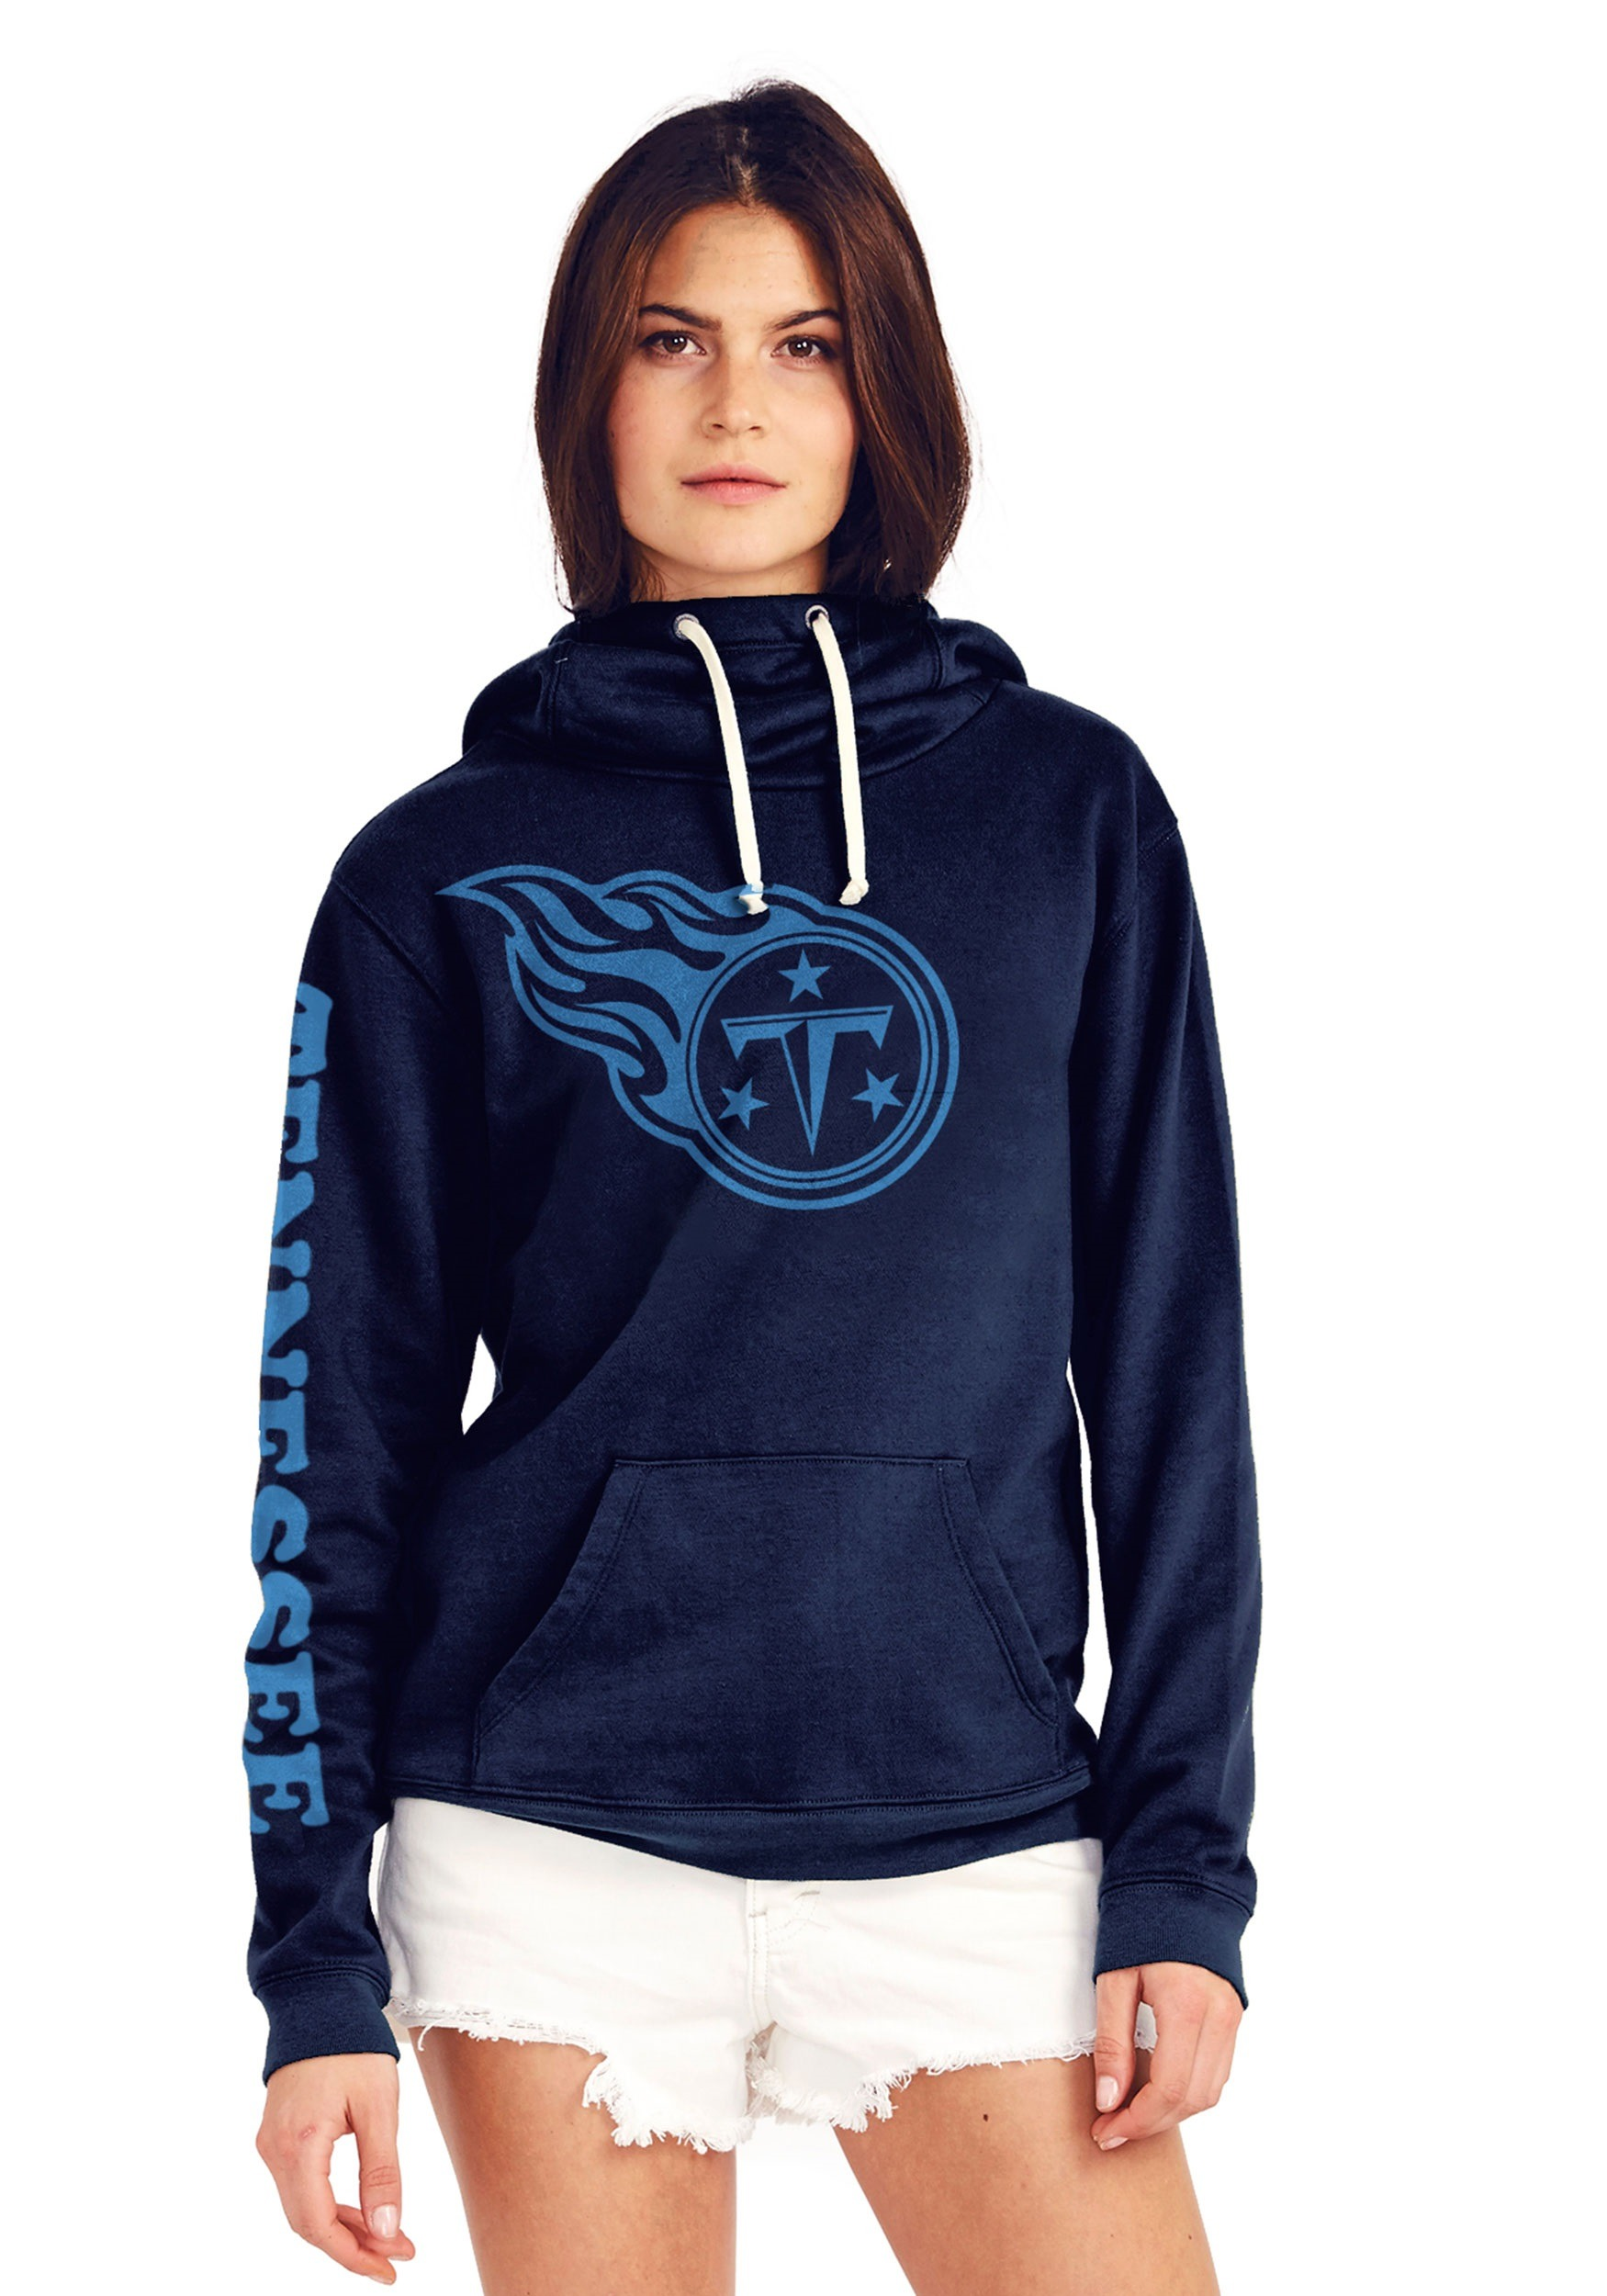 3b35c801bb8 Tennessee Titans Women's Cowl Neck Hooded Sweatshirt